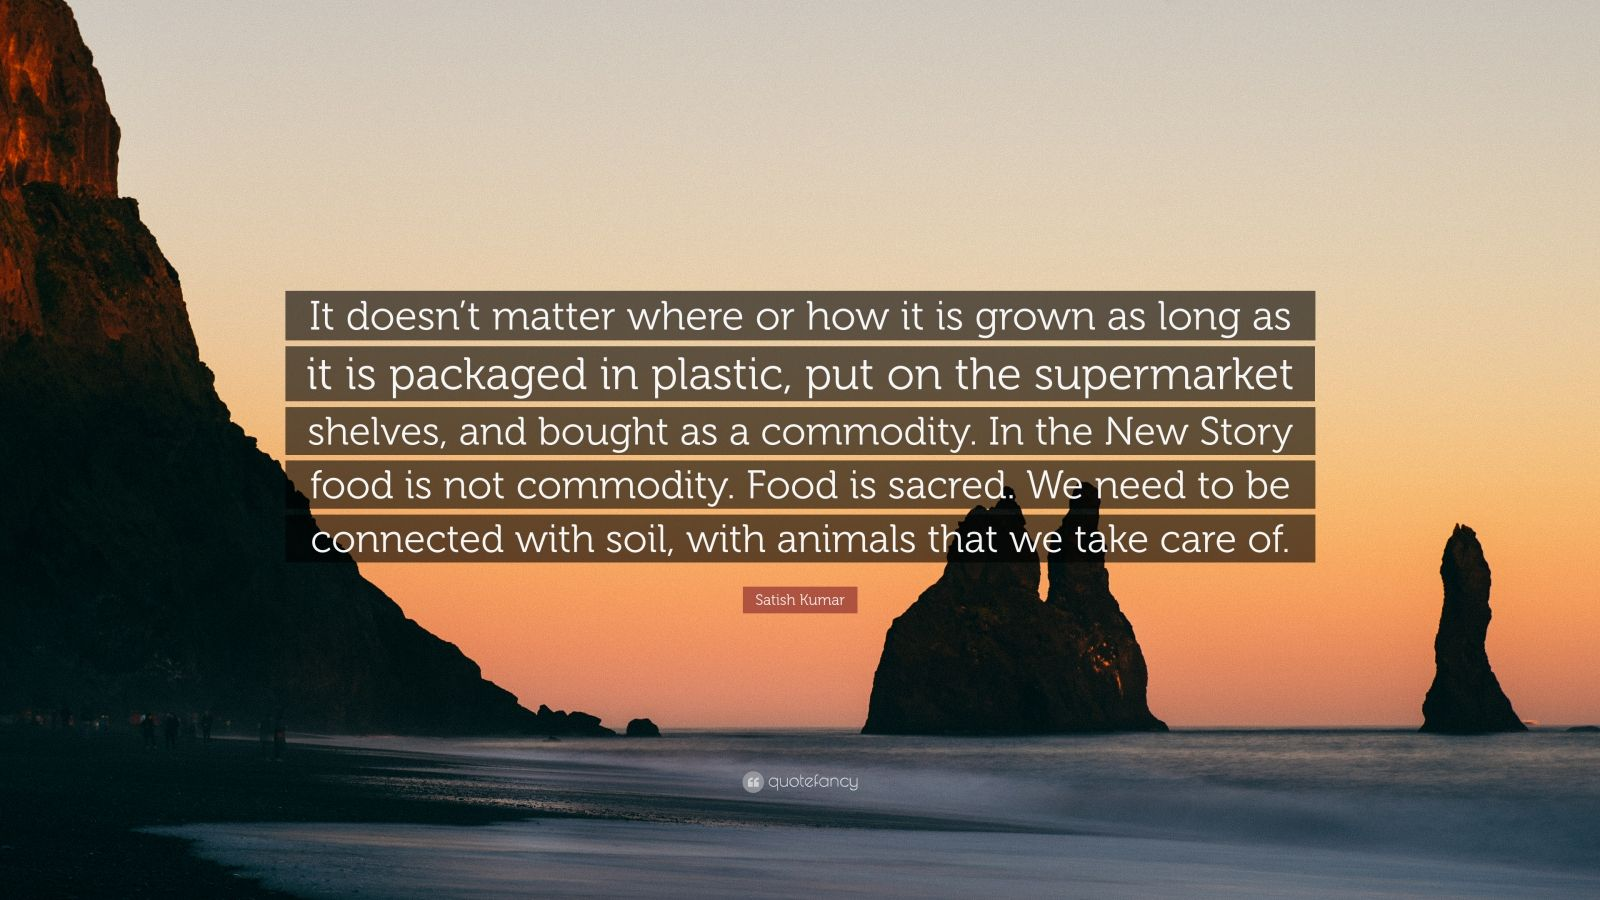 """Satish Kumar Quote: """"It doesn't matter where or how it is grown as long as it is packaged in plastic, put on the supermarket shelves, and bought as a commodity. In the New Story food is not commodity. Food is sacred. We need to be connected with soil, with animals that we take care of."""""""